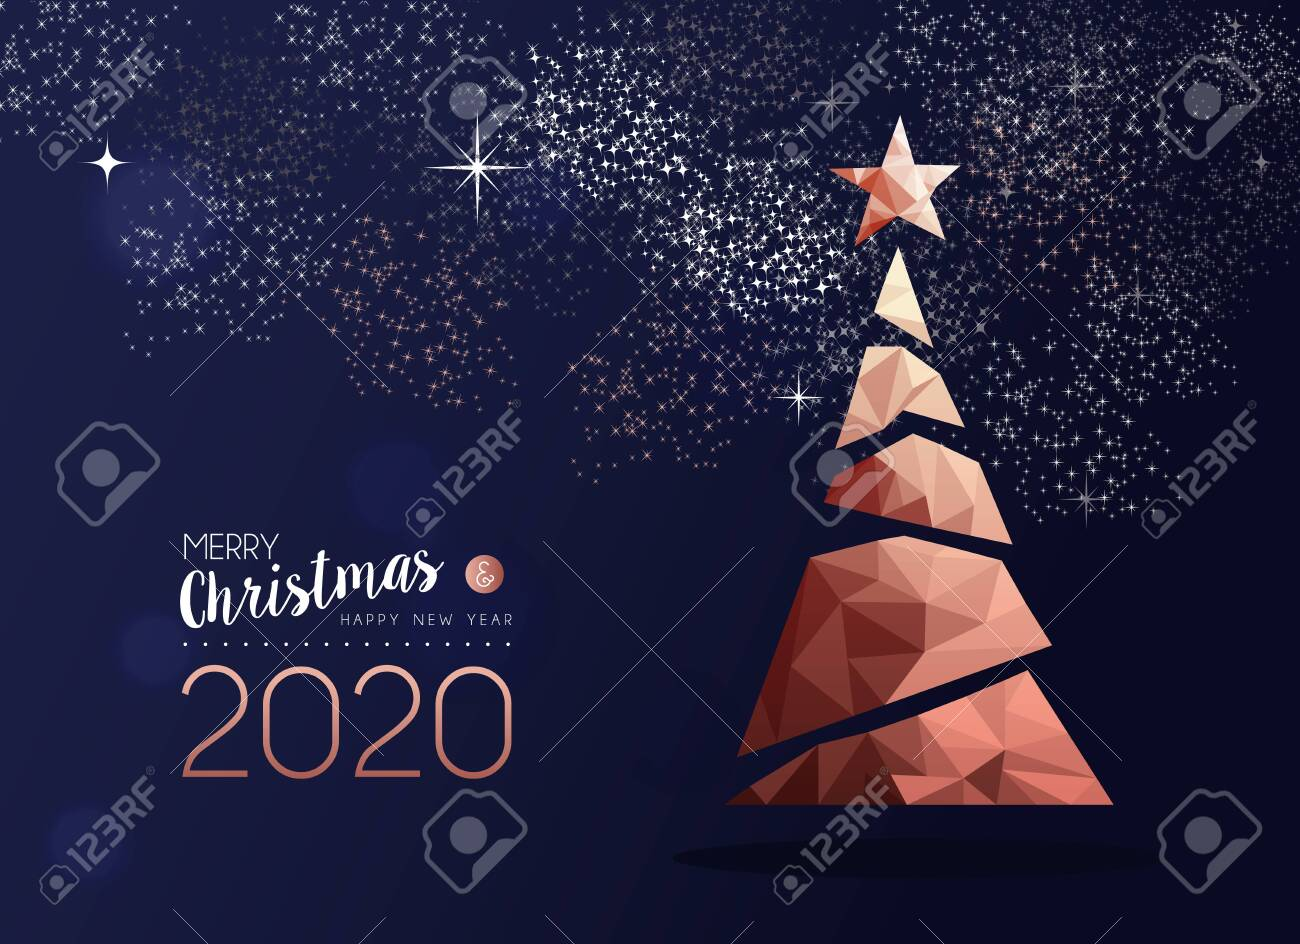 Merry Christmas And Happy New Year 2020 Copper Pine Tree In